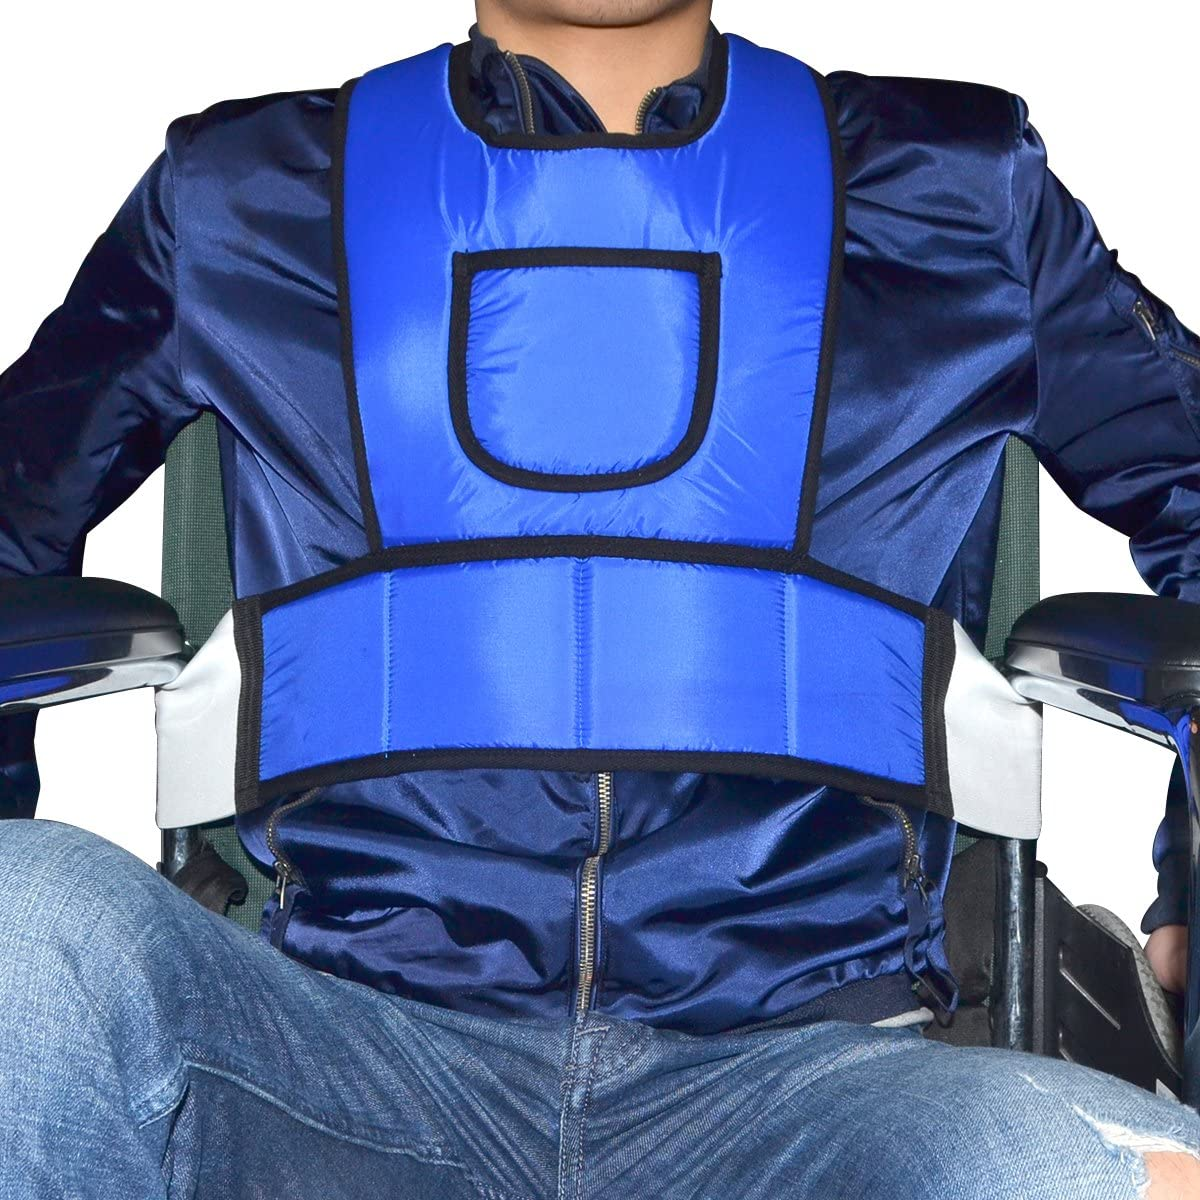 Chenhon Criss Cross Chest Vest Restraint for Use with Bed or Chair (Size:M) …